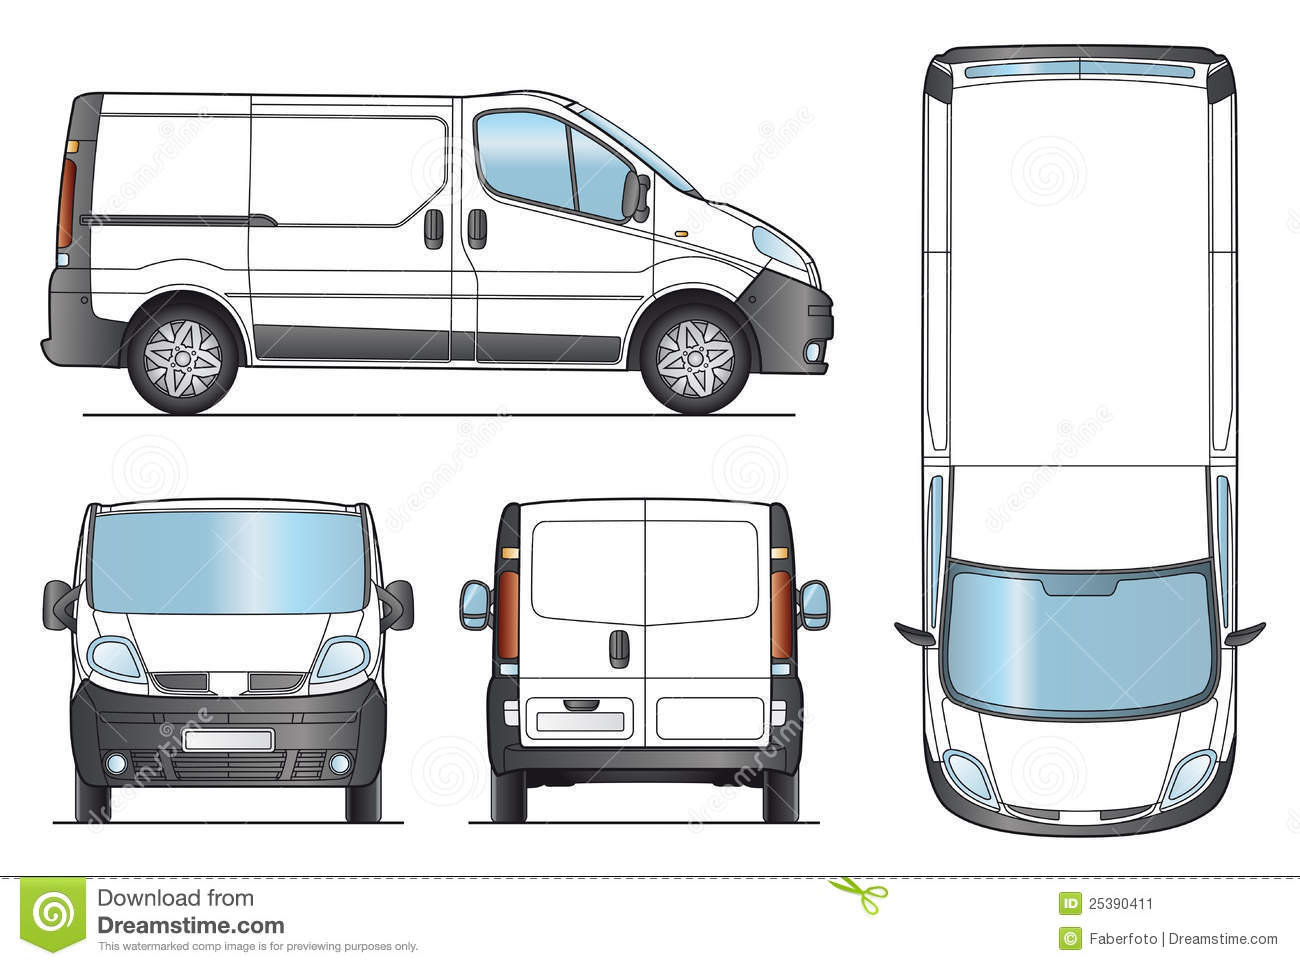 Delivery Van Template - Vector Stock Vector - Image: 25390411